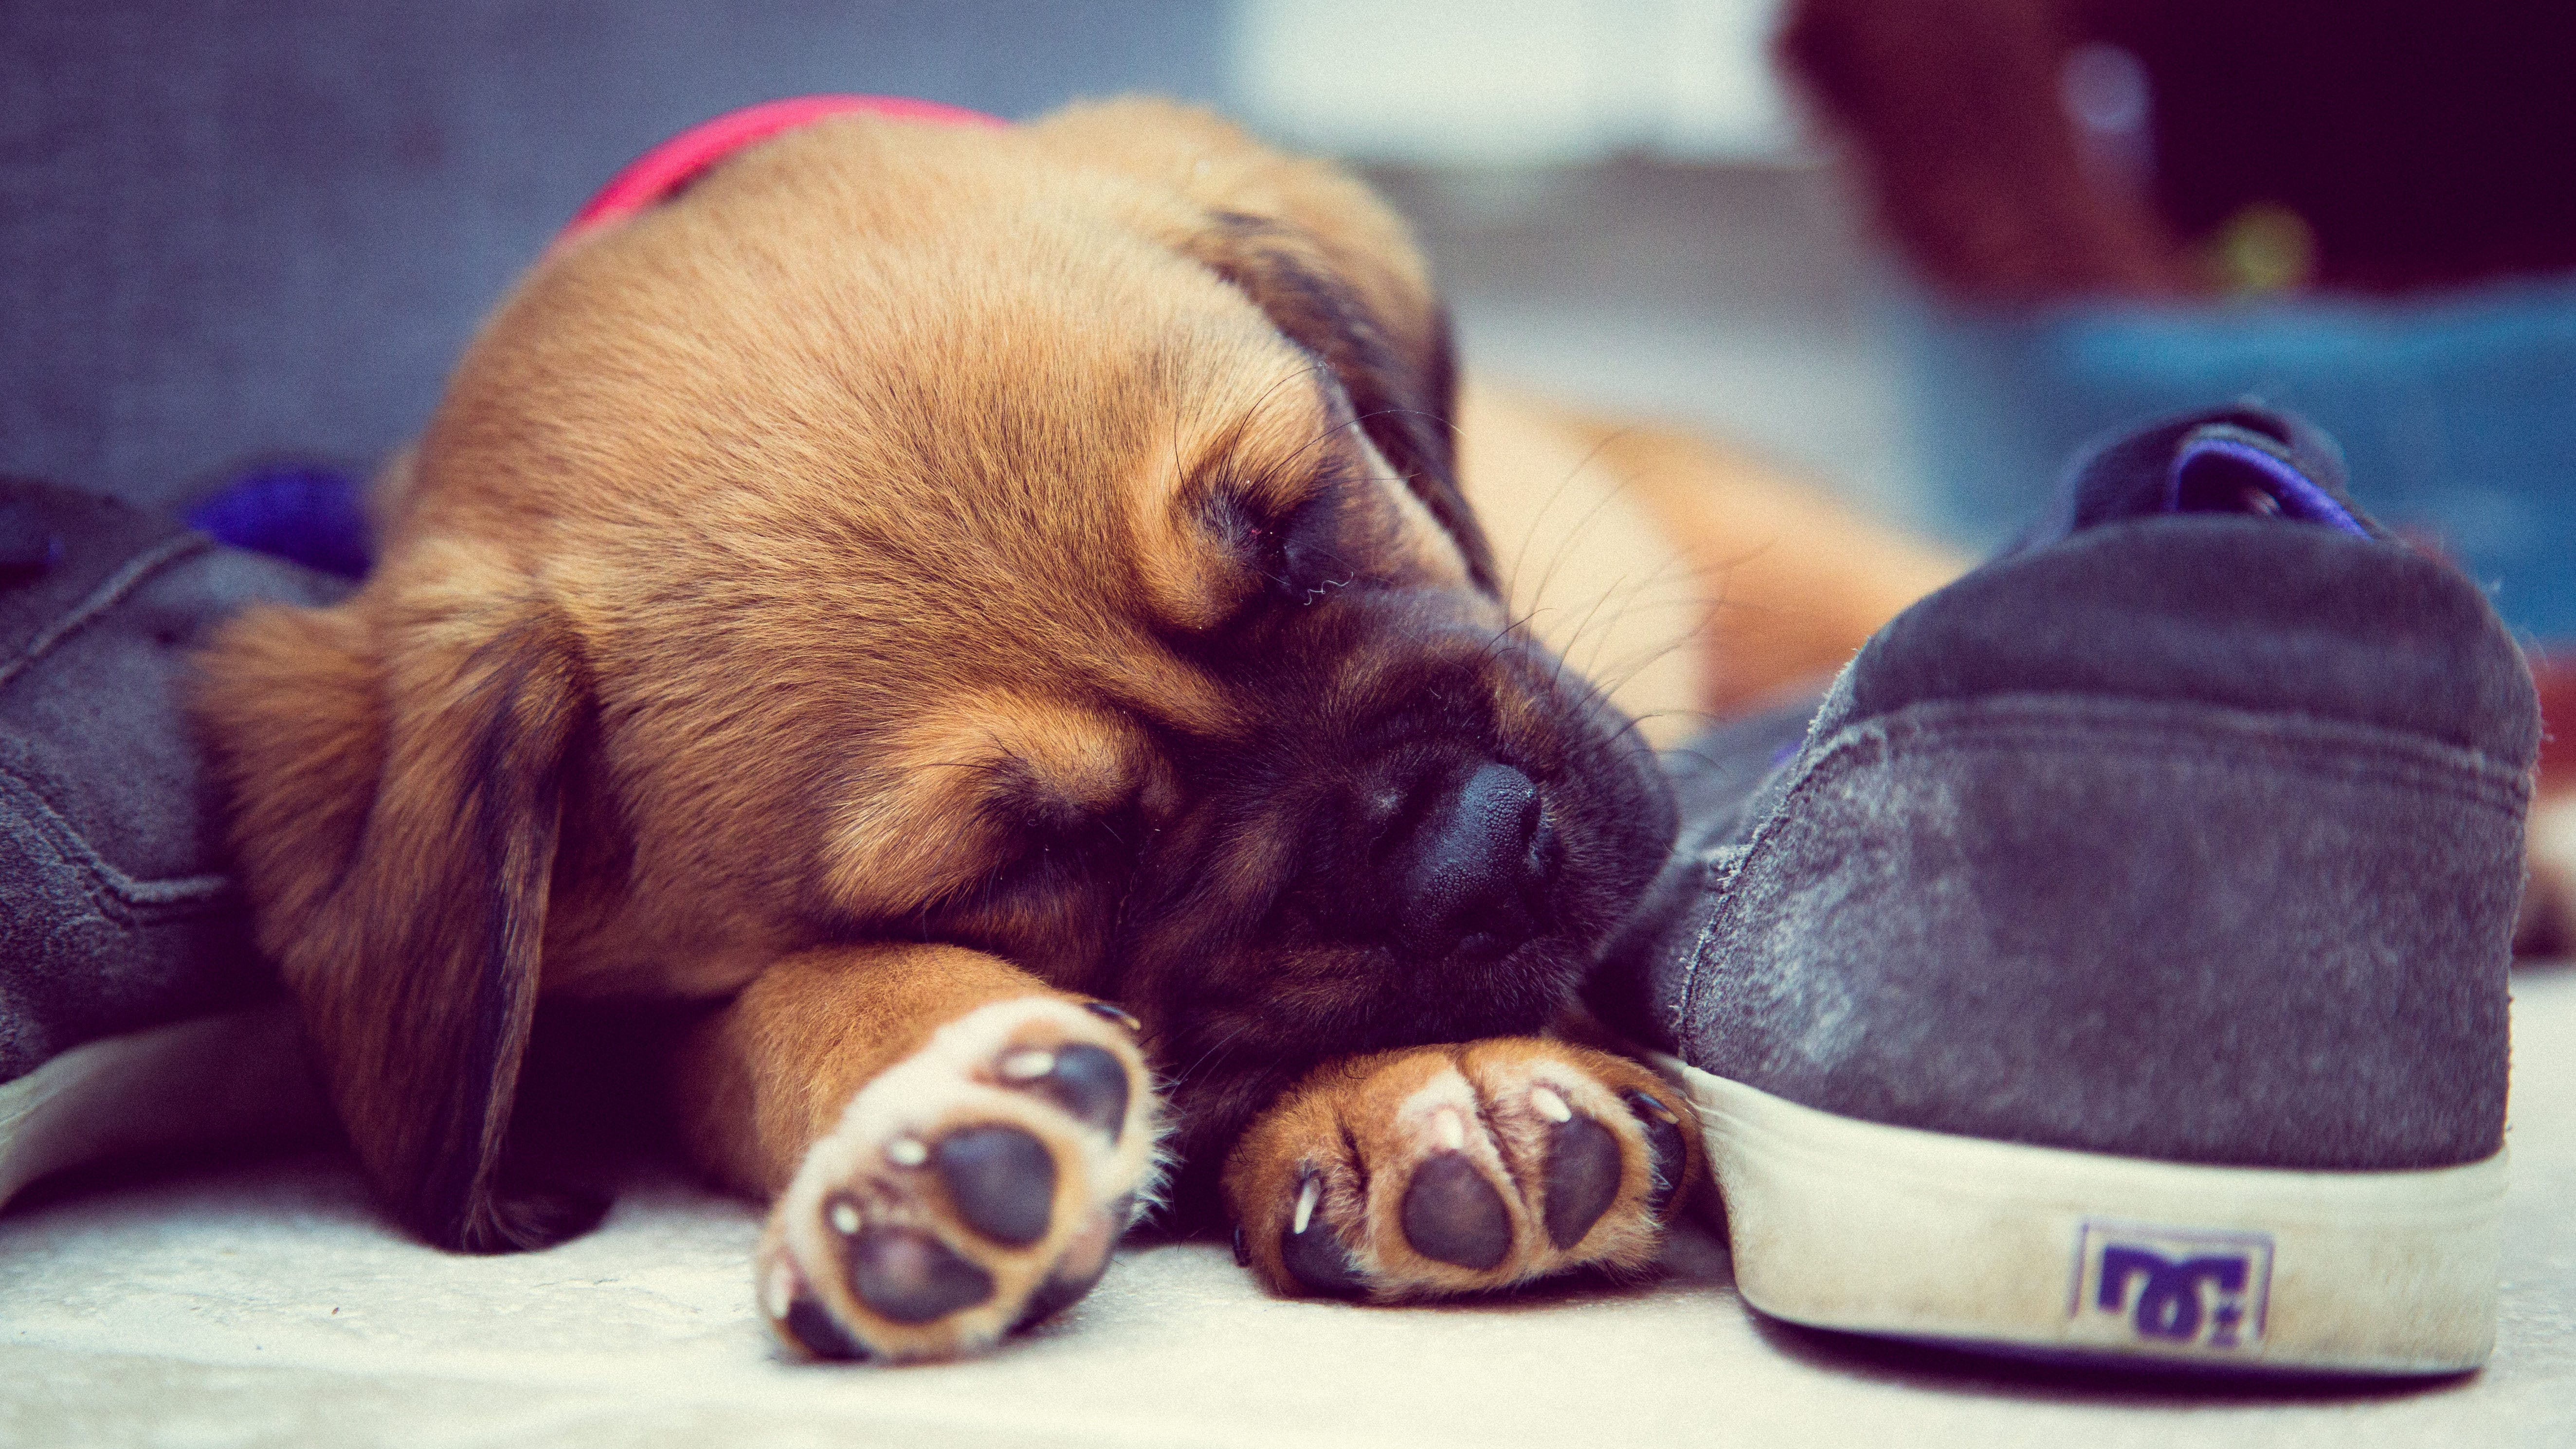 Short-coated Brown Puppy Sleeping Beside Grey Dc Skate Shoe